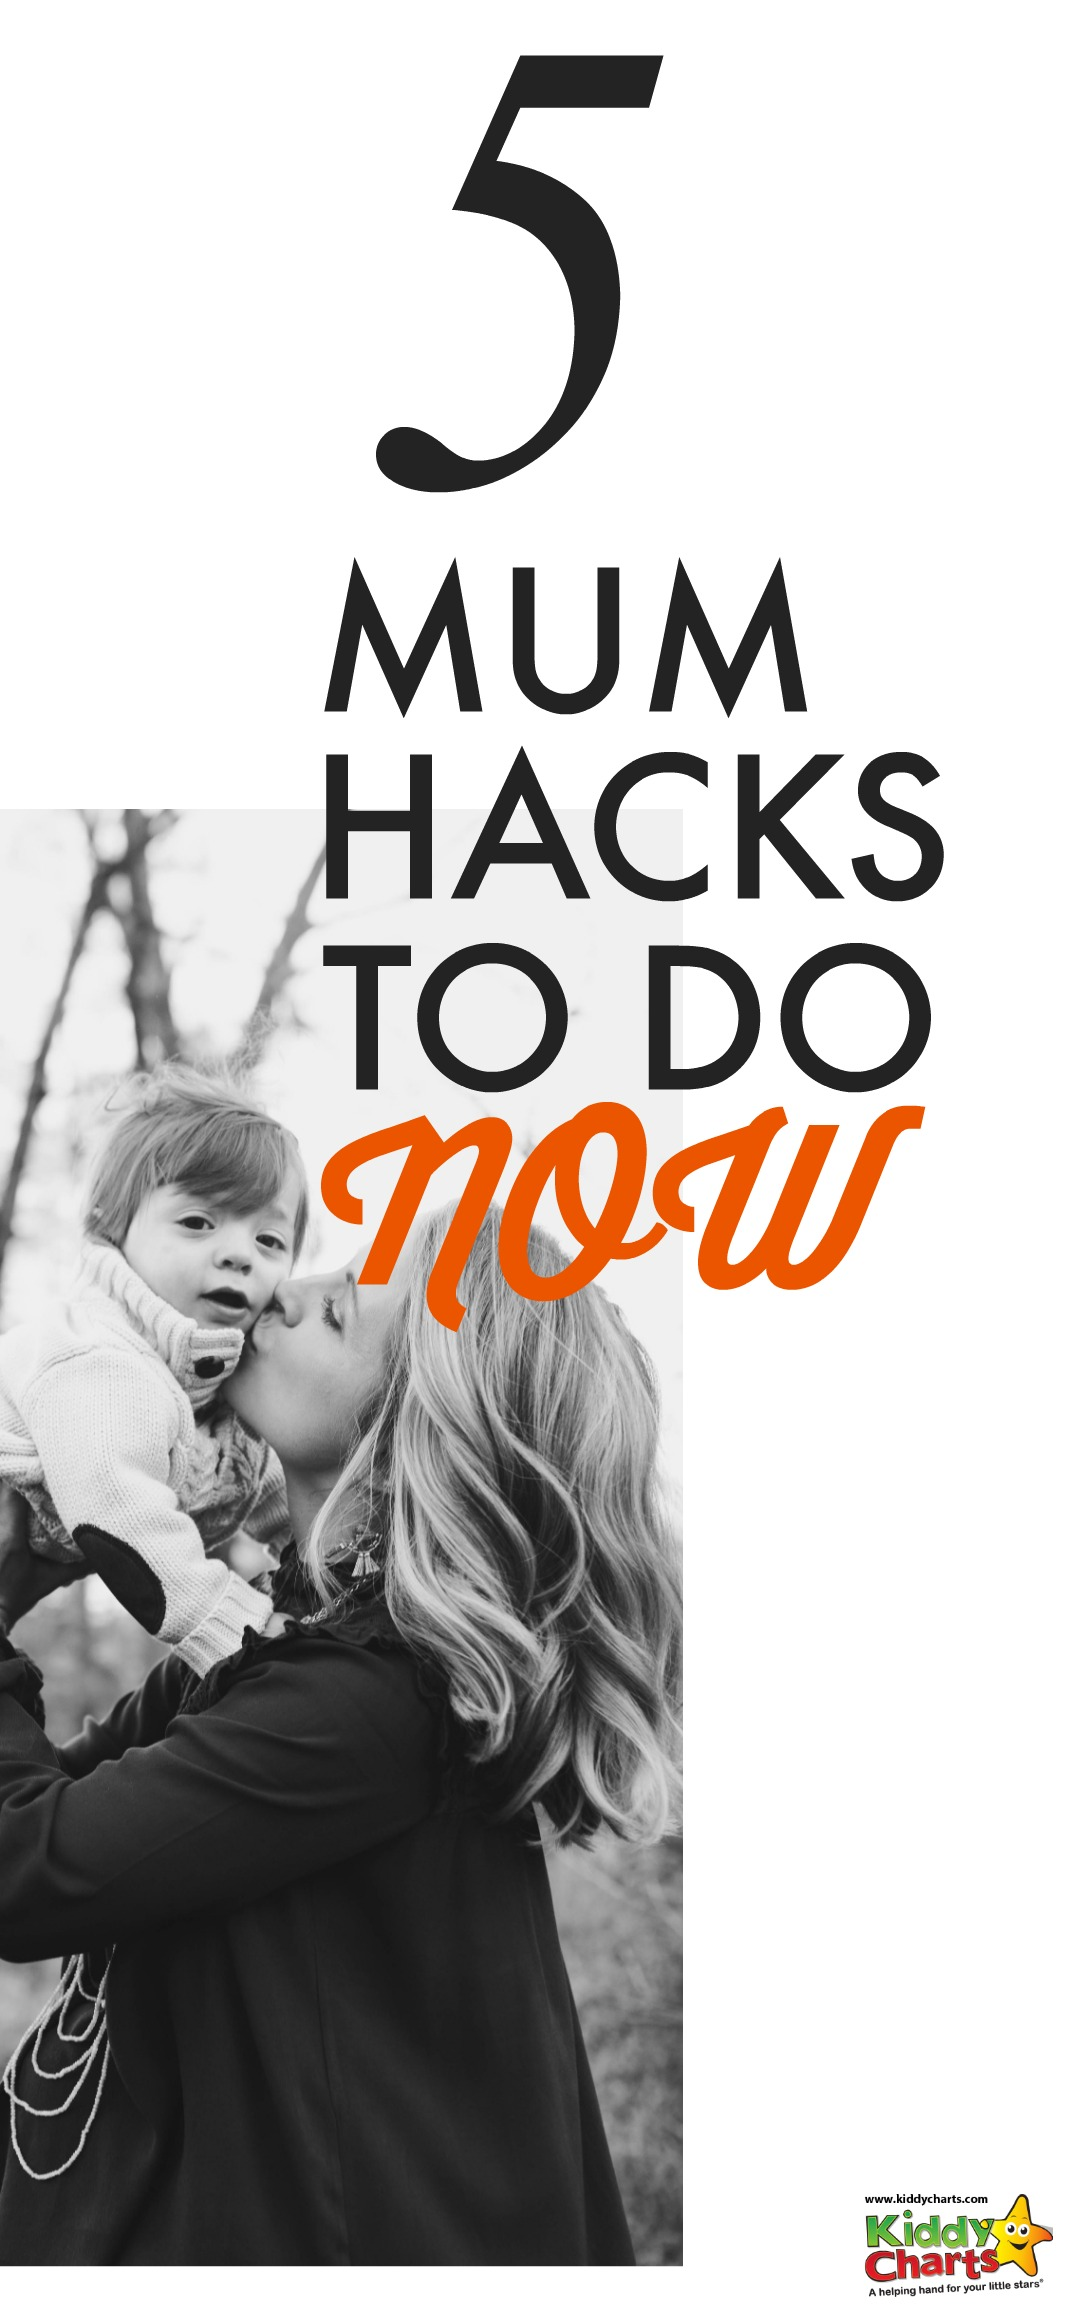 5 mum hacks to do today - go on take a look!